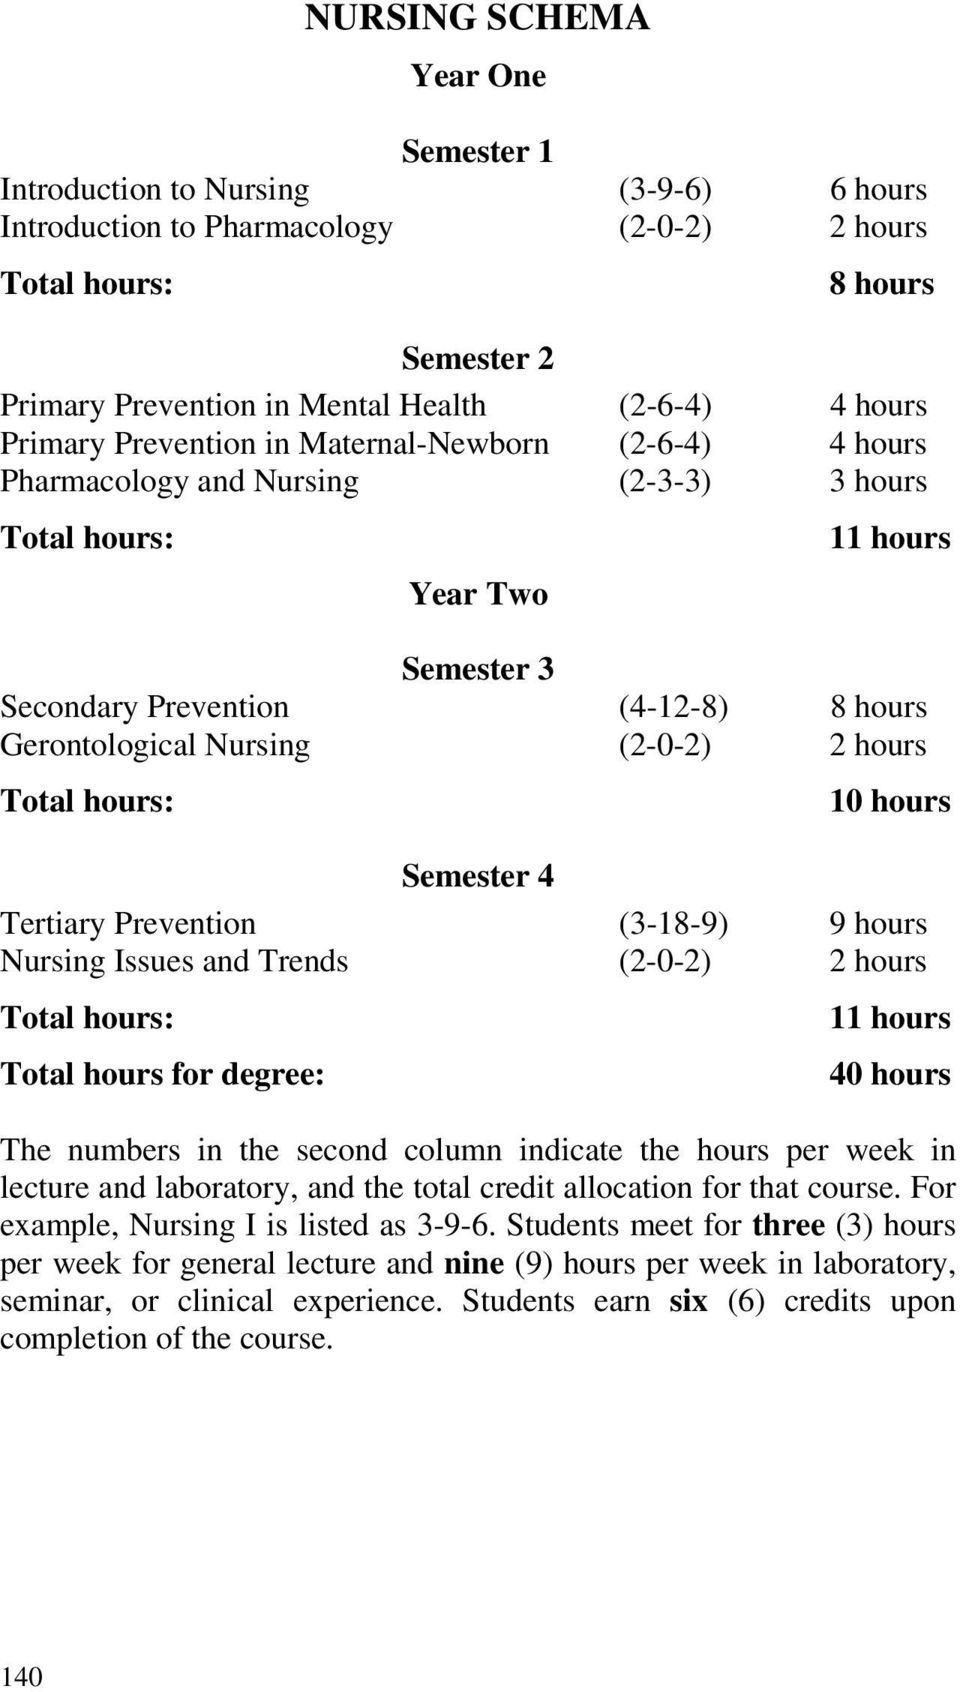 hours Semester 4 Tertiary Prevention (3-18-9) 9 hours Nursing Issues and Trends (2-0-2) 2 hours 11 hours Total hours for degree: 40 hours The numbers in the second column indicate the hours per week